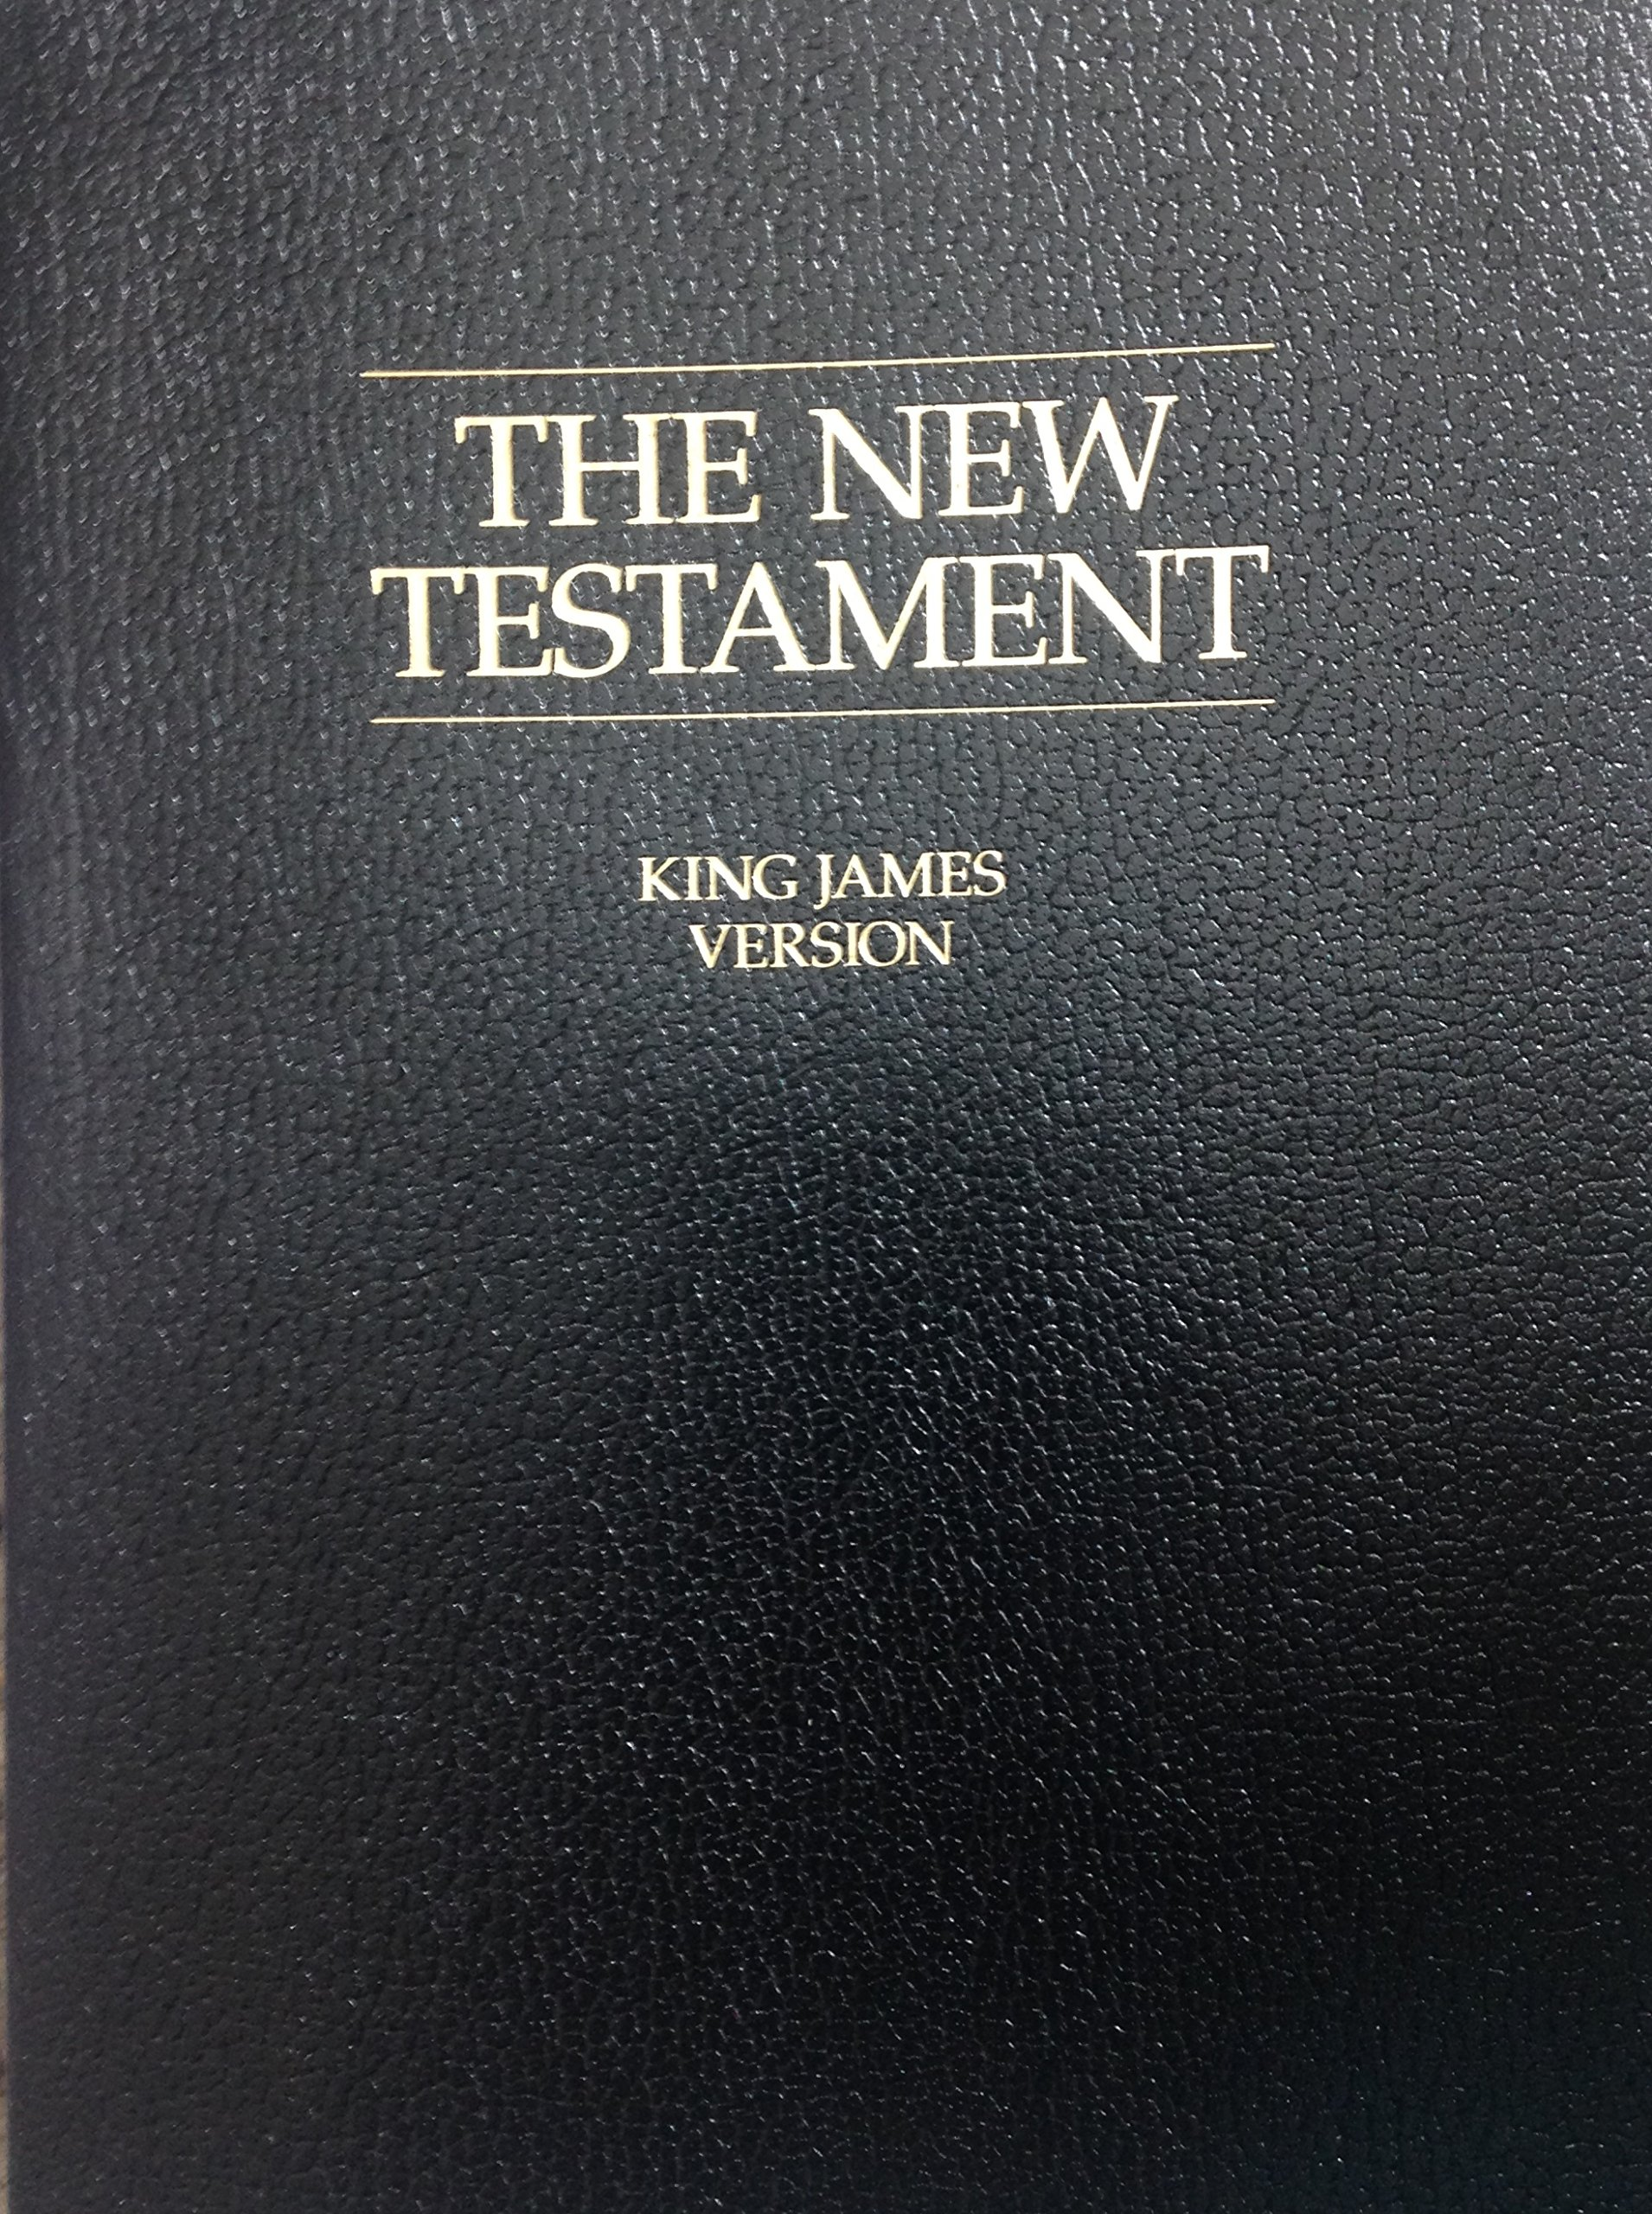 The New Testament and the Latter-day Saints